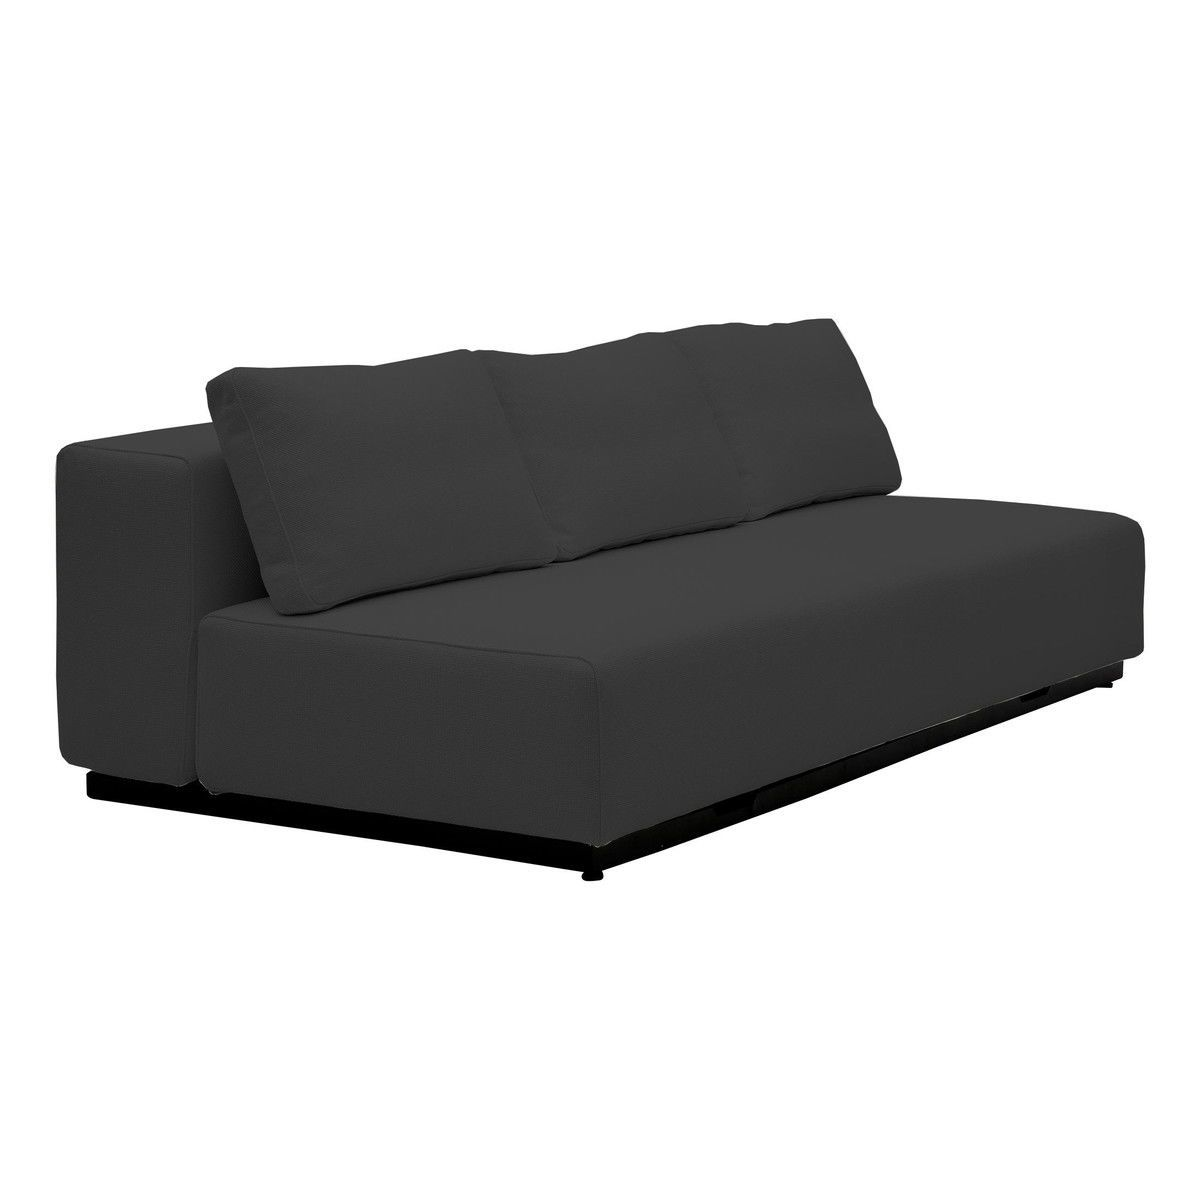 nevada 3 p sofa bed softline. Black Bedroom Furniture Sets. Home Design Ideas